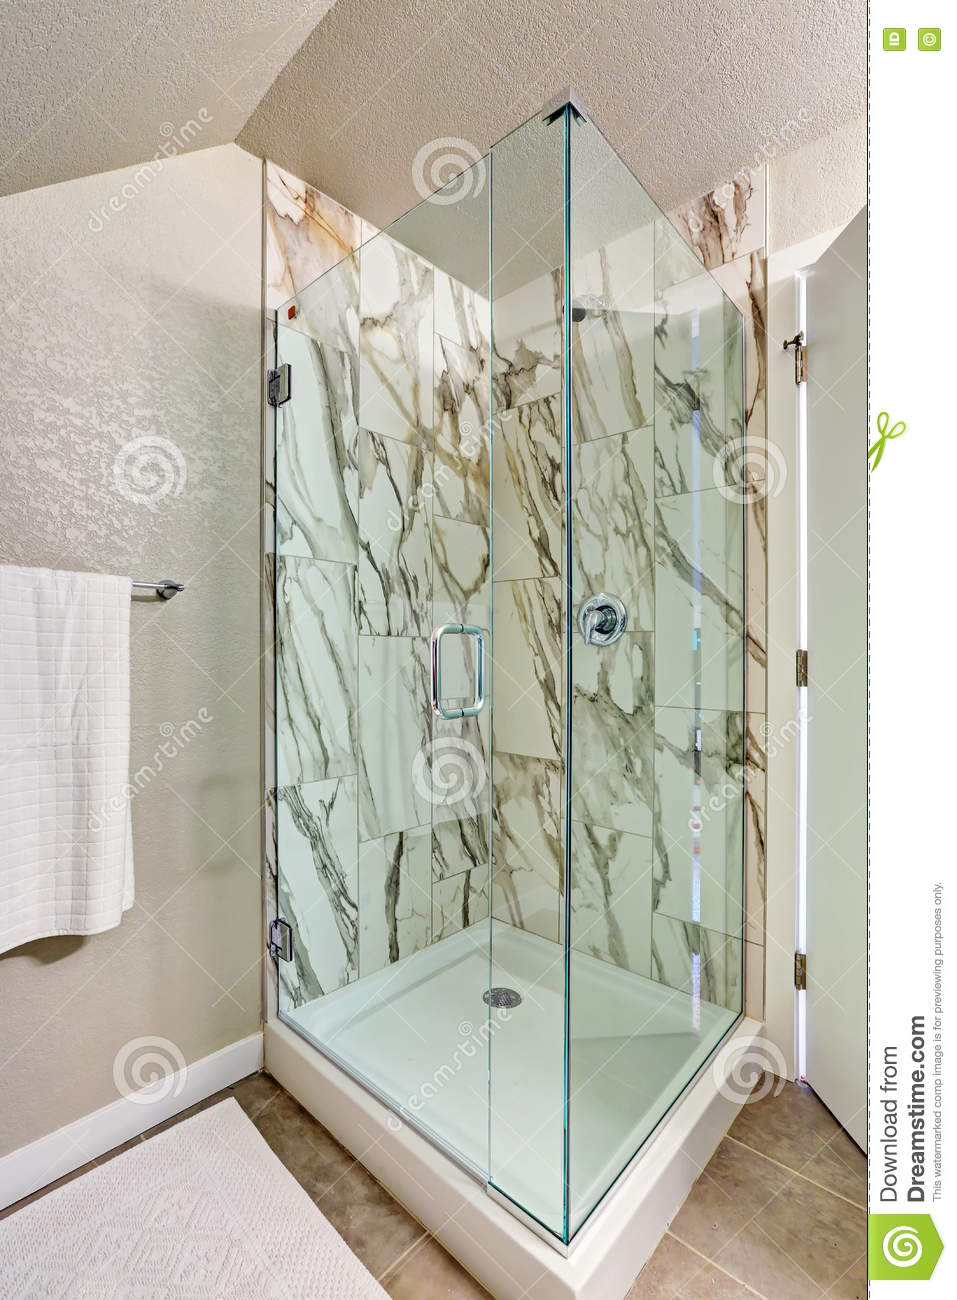 Photo Of Attic Bathroom With An Alcove Shower Stock Photo Image Of